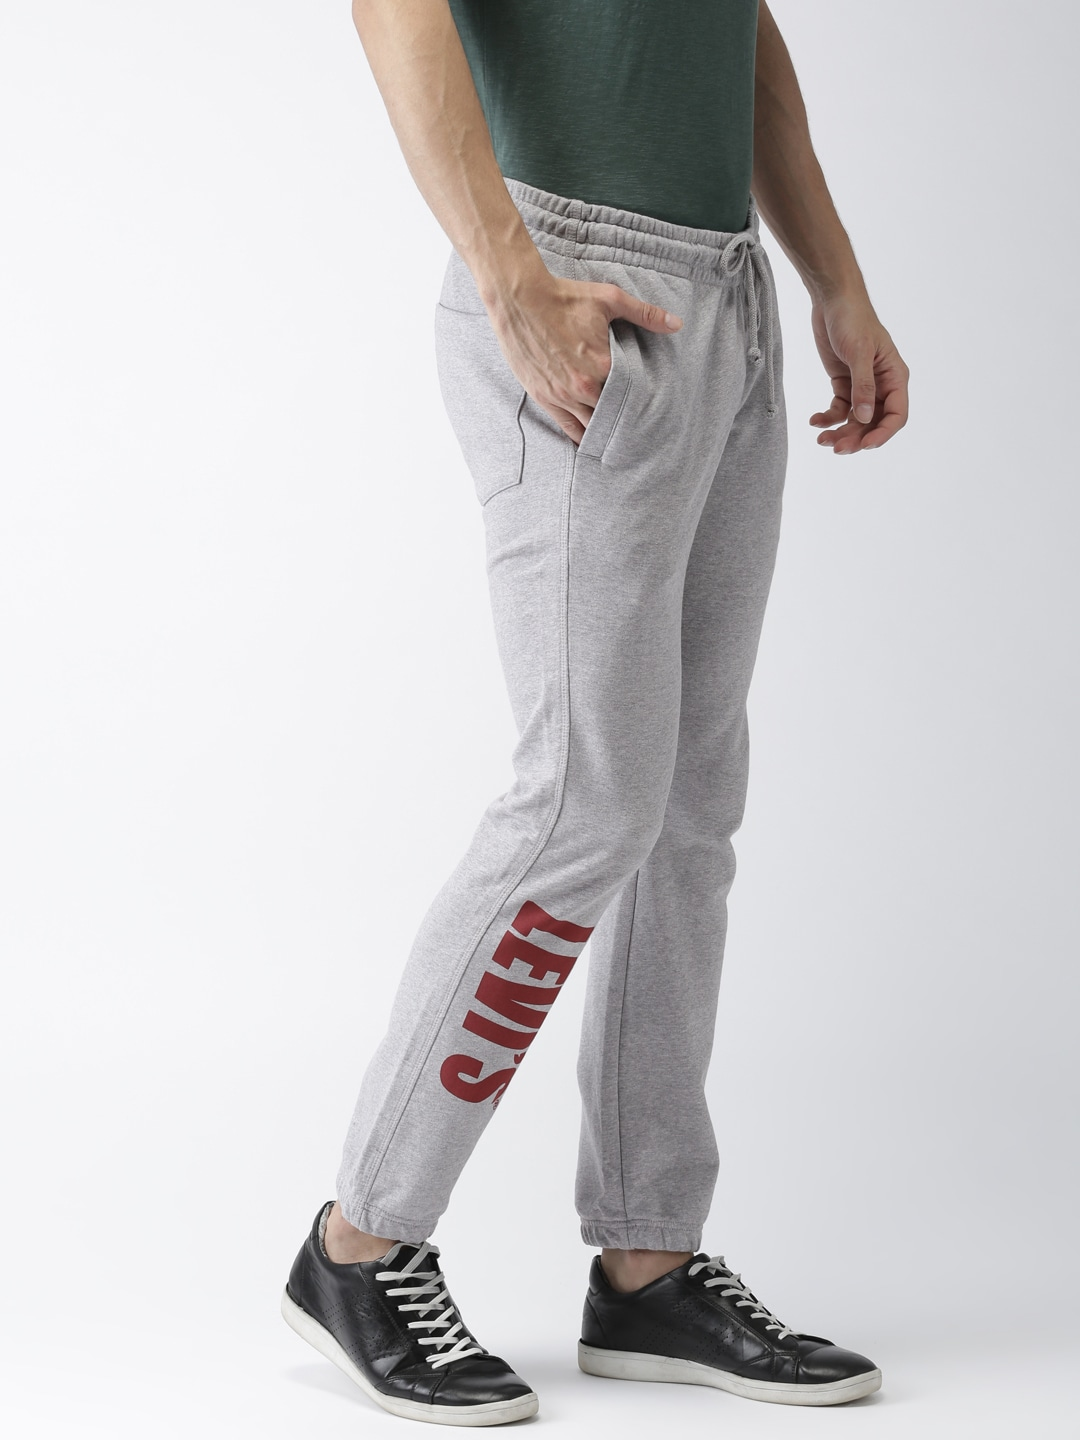 e22f72a4b1fa Levis 512 - Buy Levis 512 online in India